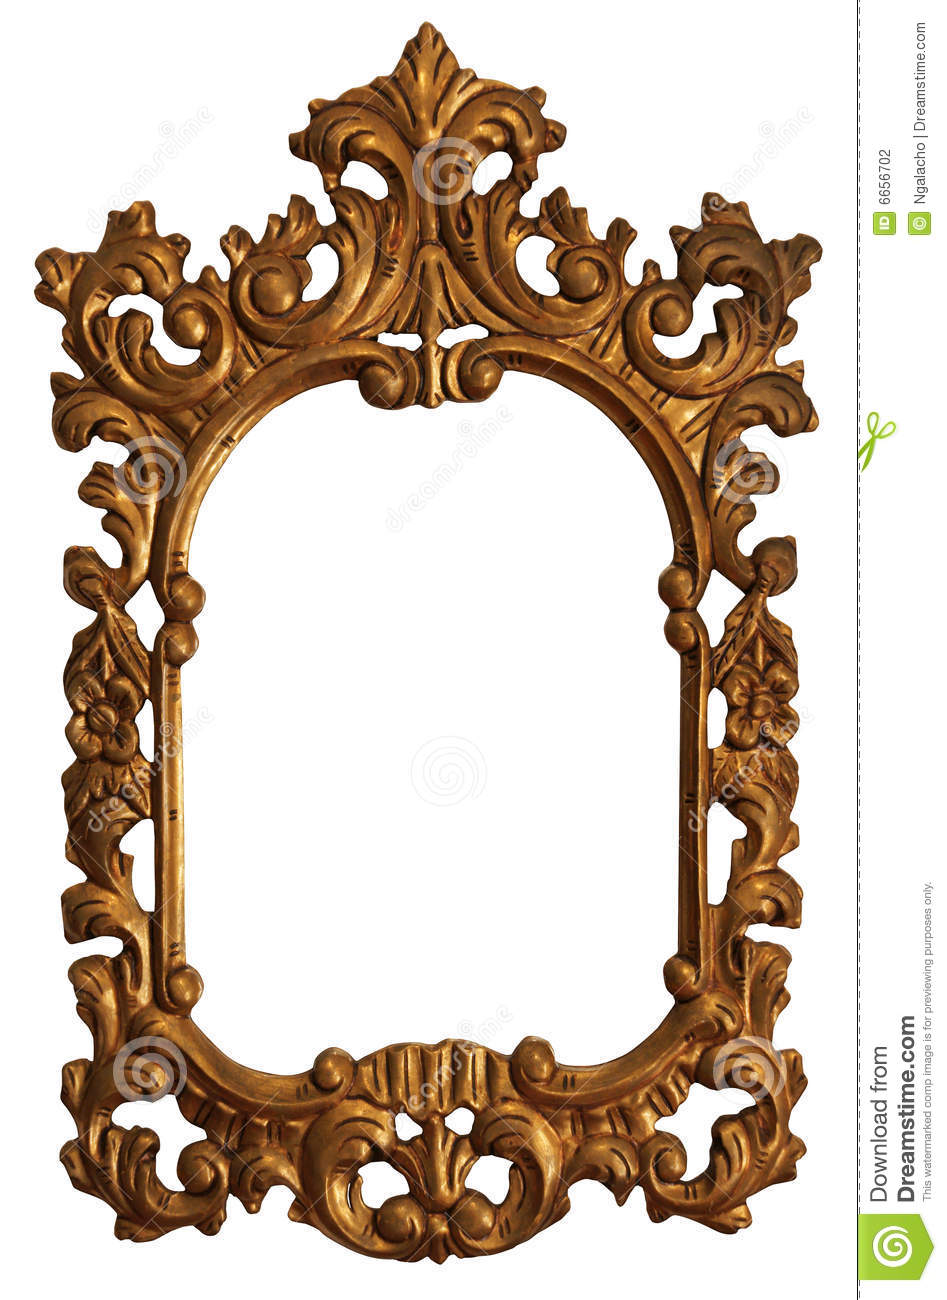 Spiegel Vintage Klein Old Gold Wood Mirror Frame With Ornaments Stock Photo